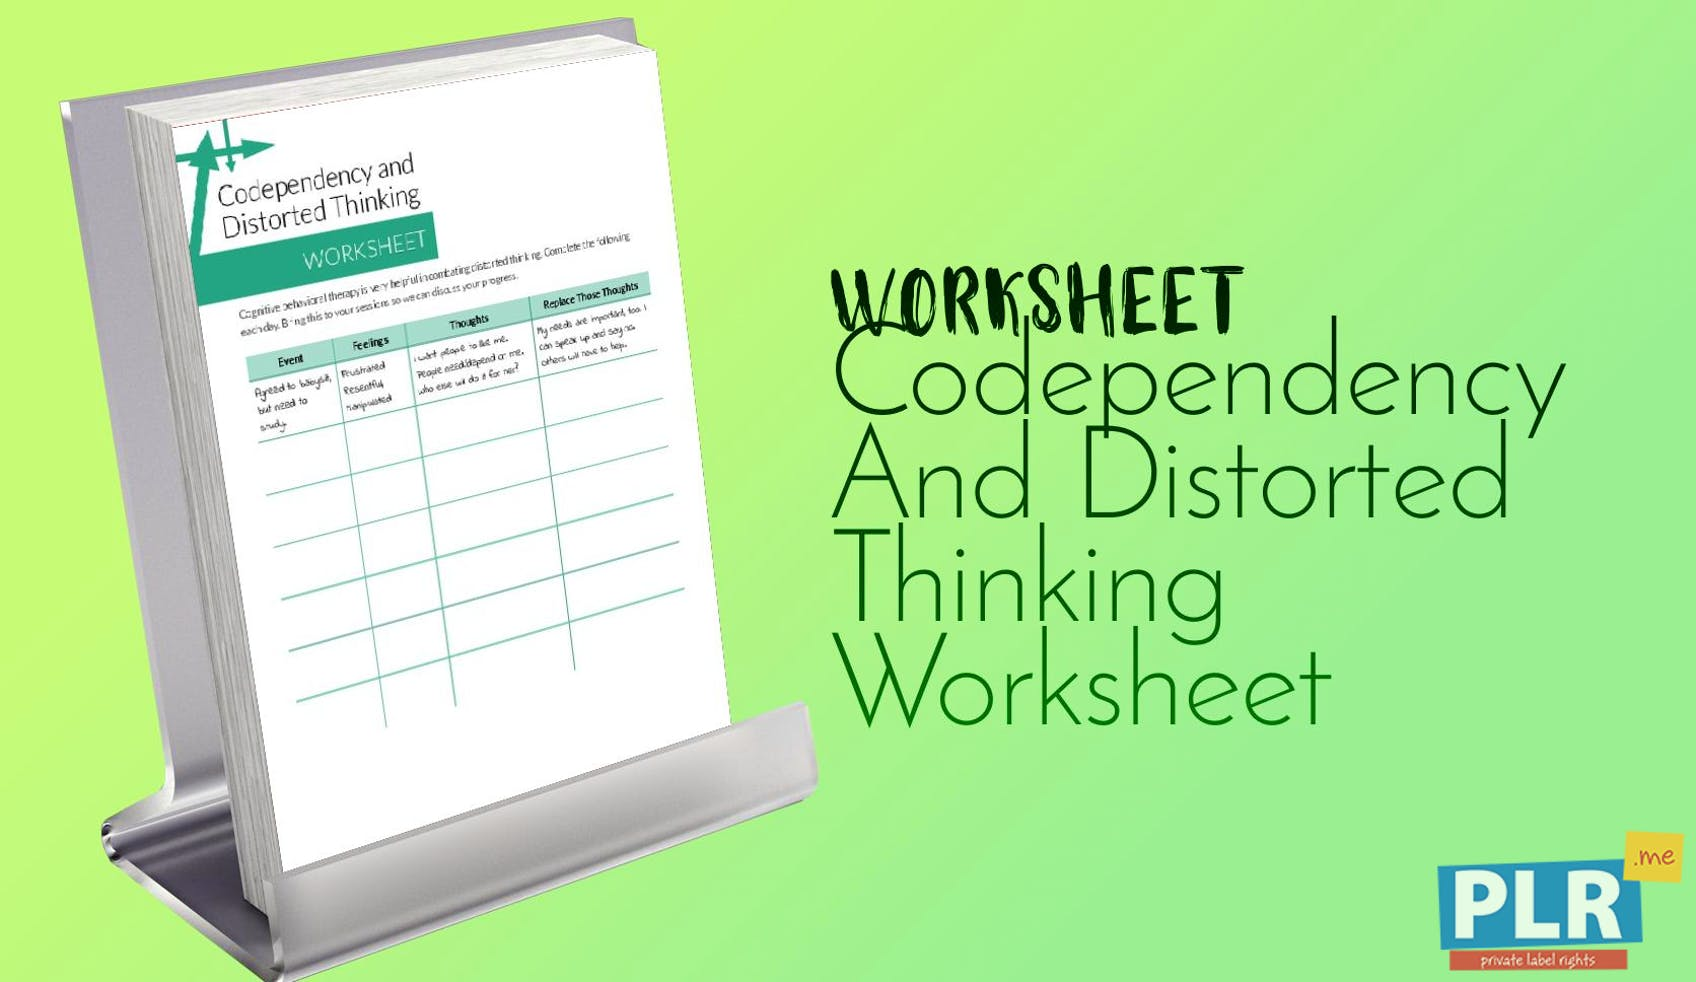 Codependency And Distorted Thinking Worksheet